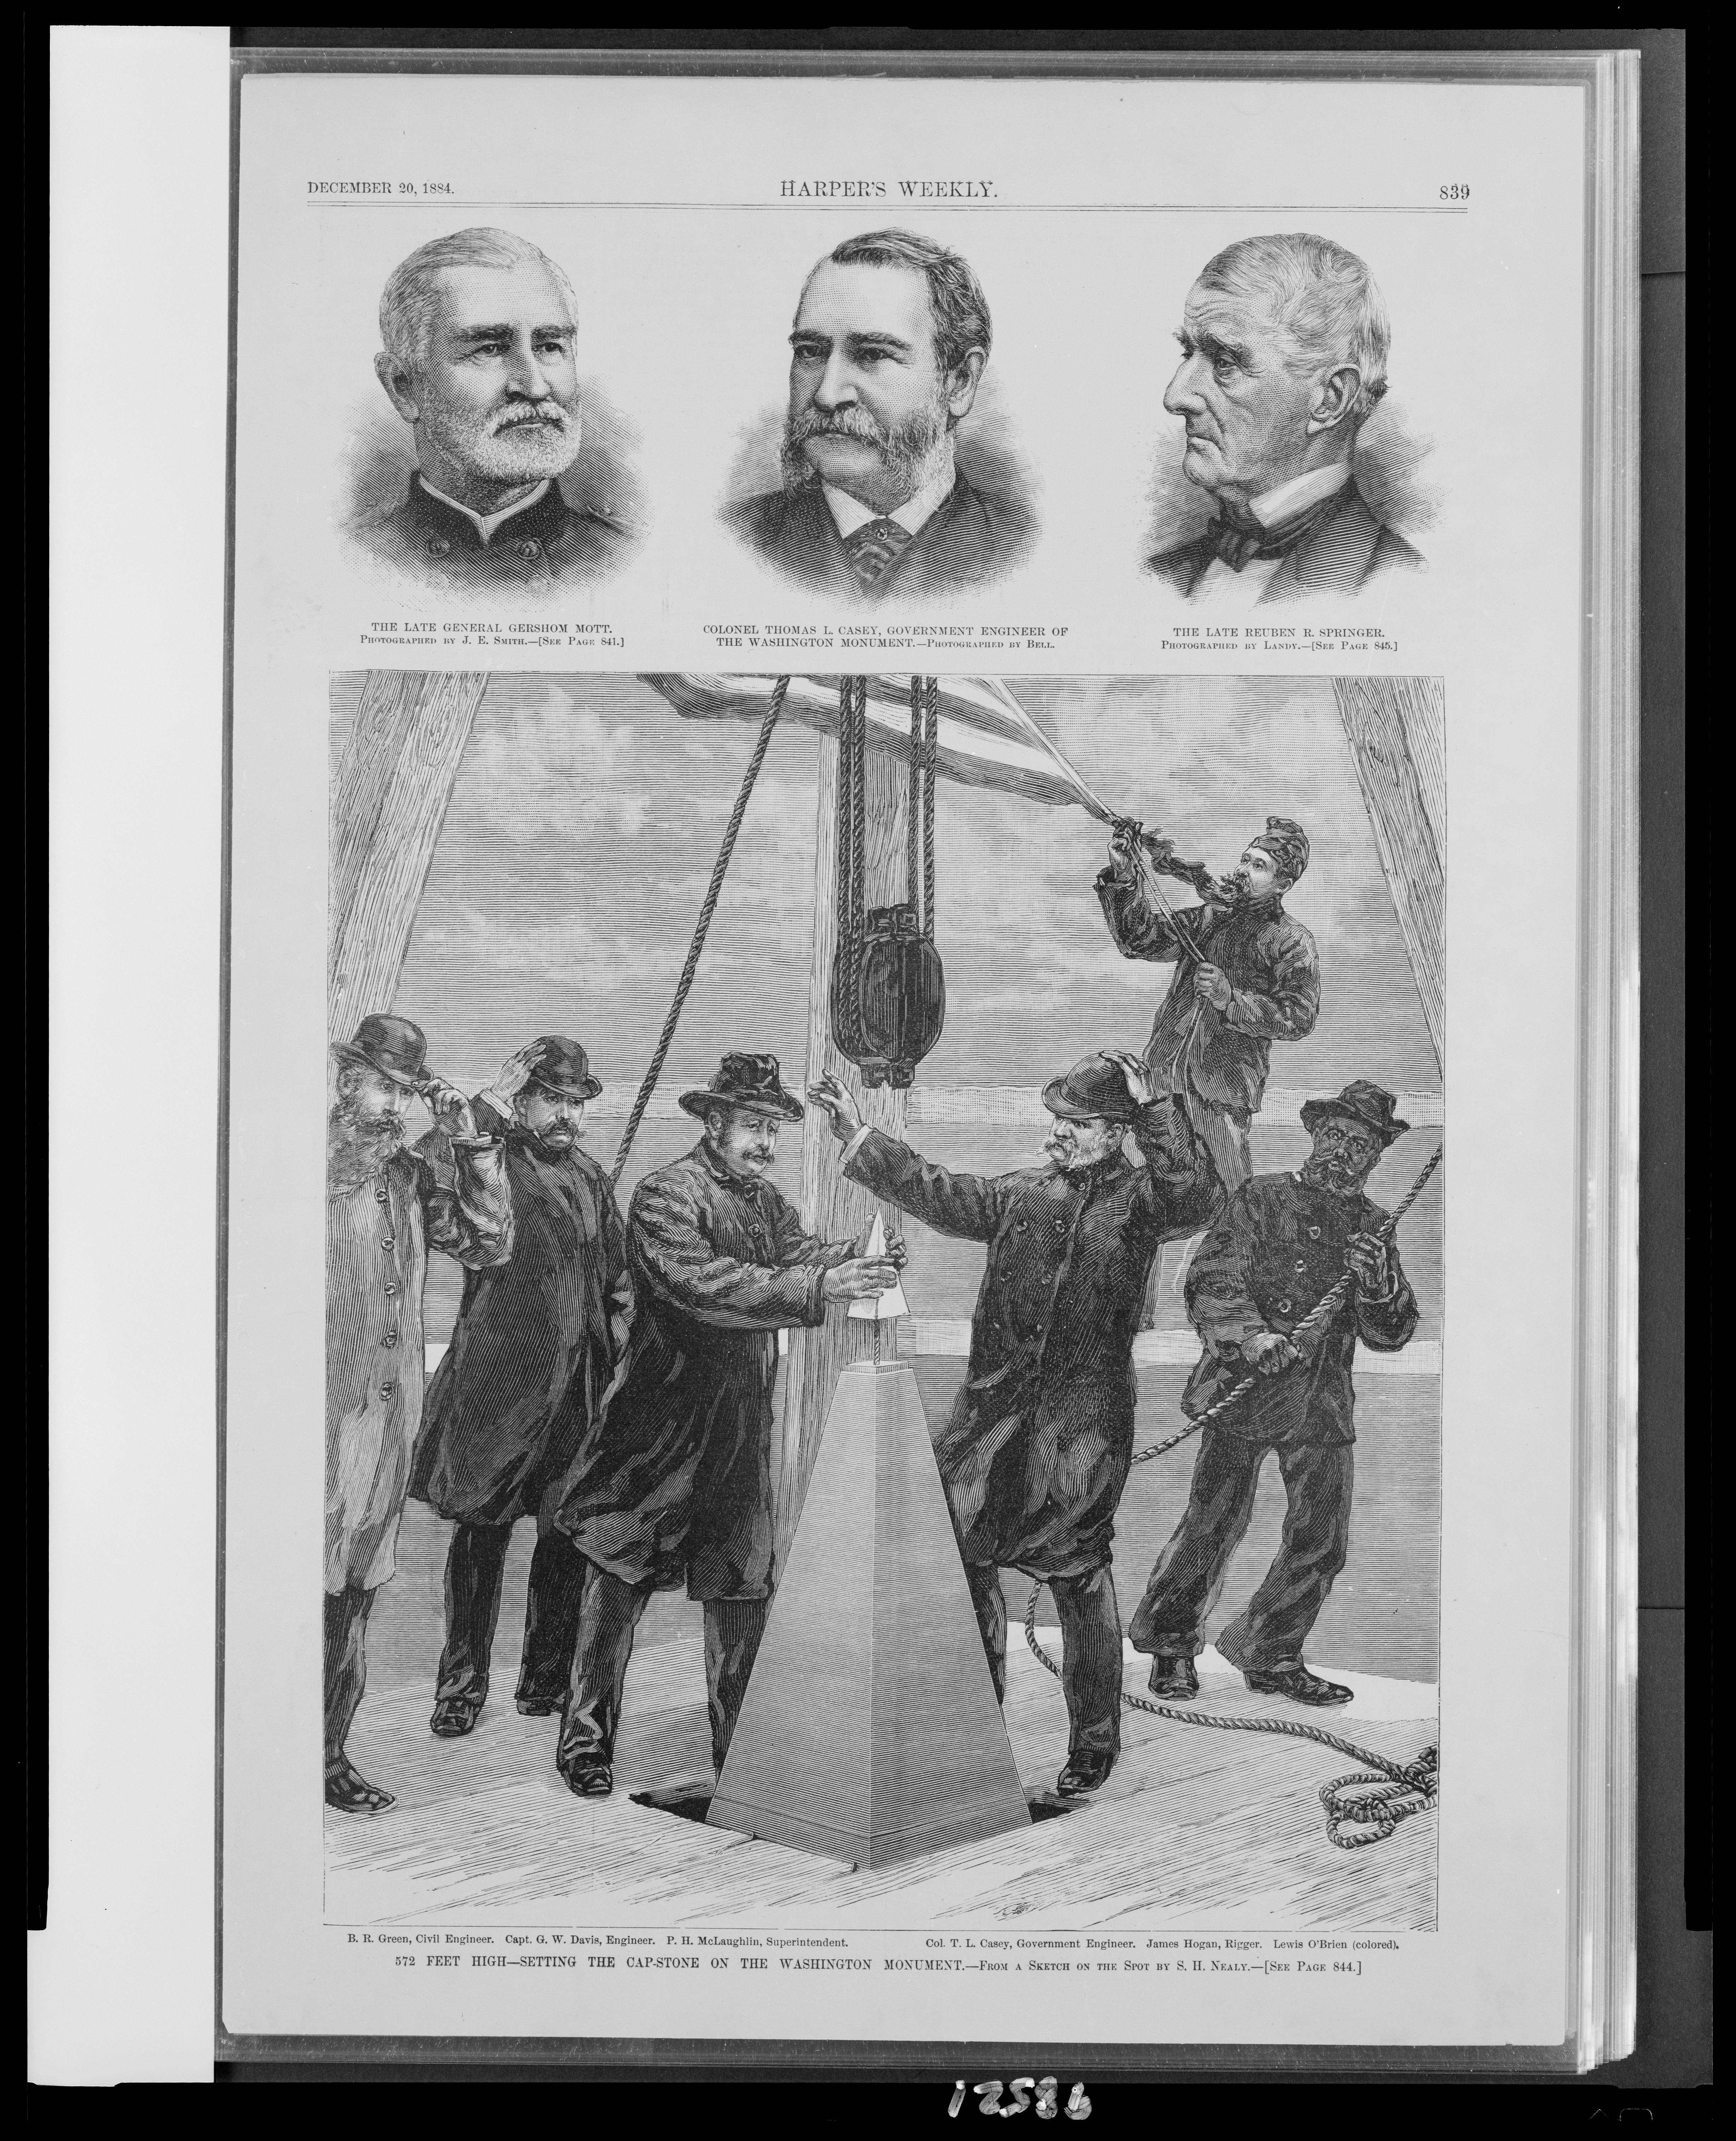 P. H. McLaughlin setting the capstone (aluminum apex) on the Washington Monument. Colonel Thomas Lincoln Casey has his hands up. An illustration from Harper's Weekly, December 20, 1884, page 839. Accompanying article on pages 844-5.